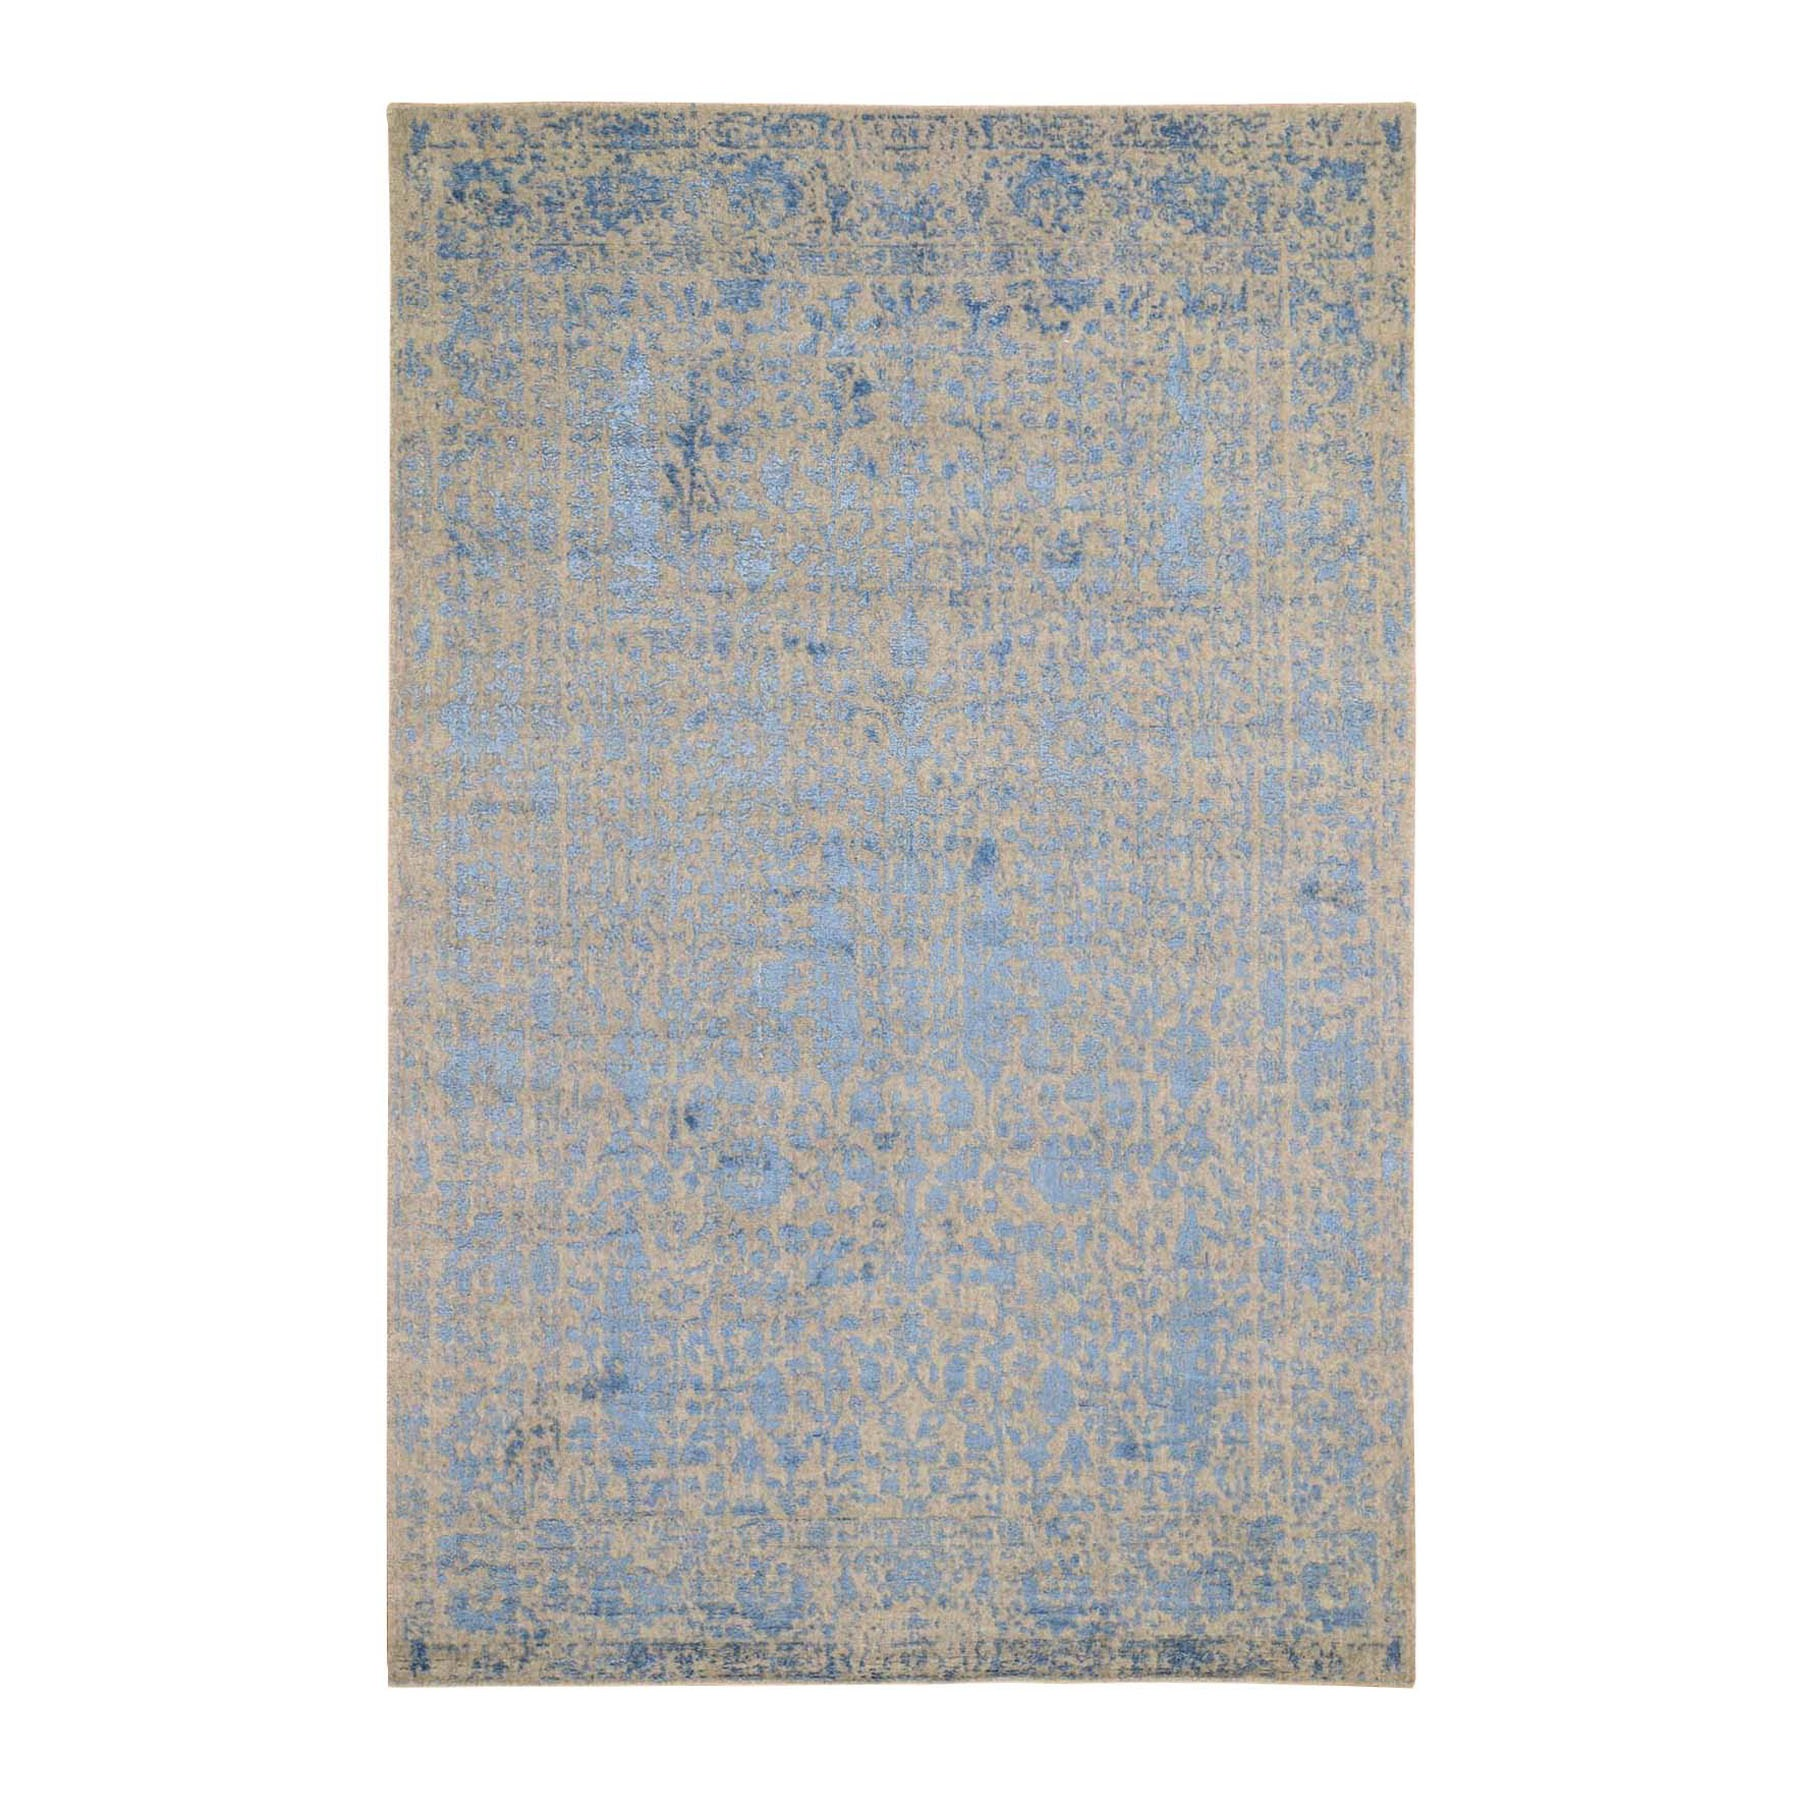 Transitional Hand Loomed Blue Rug No: 0198616